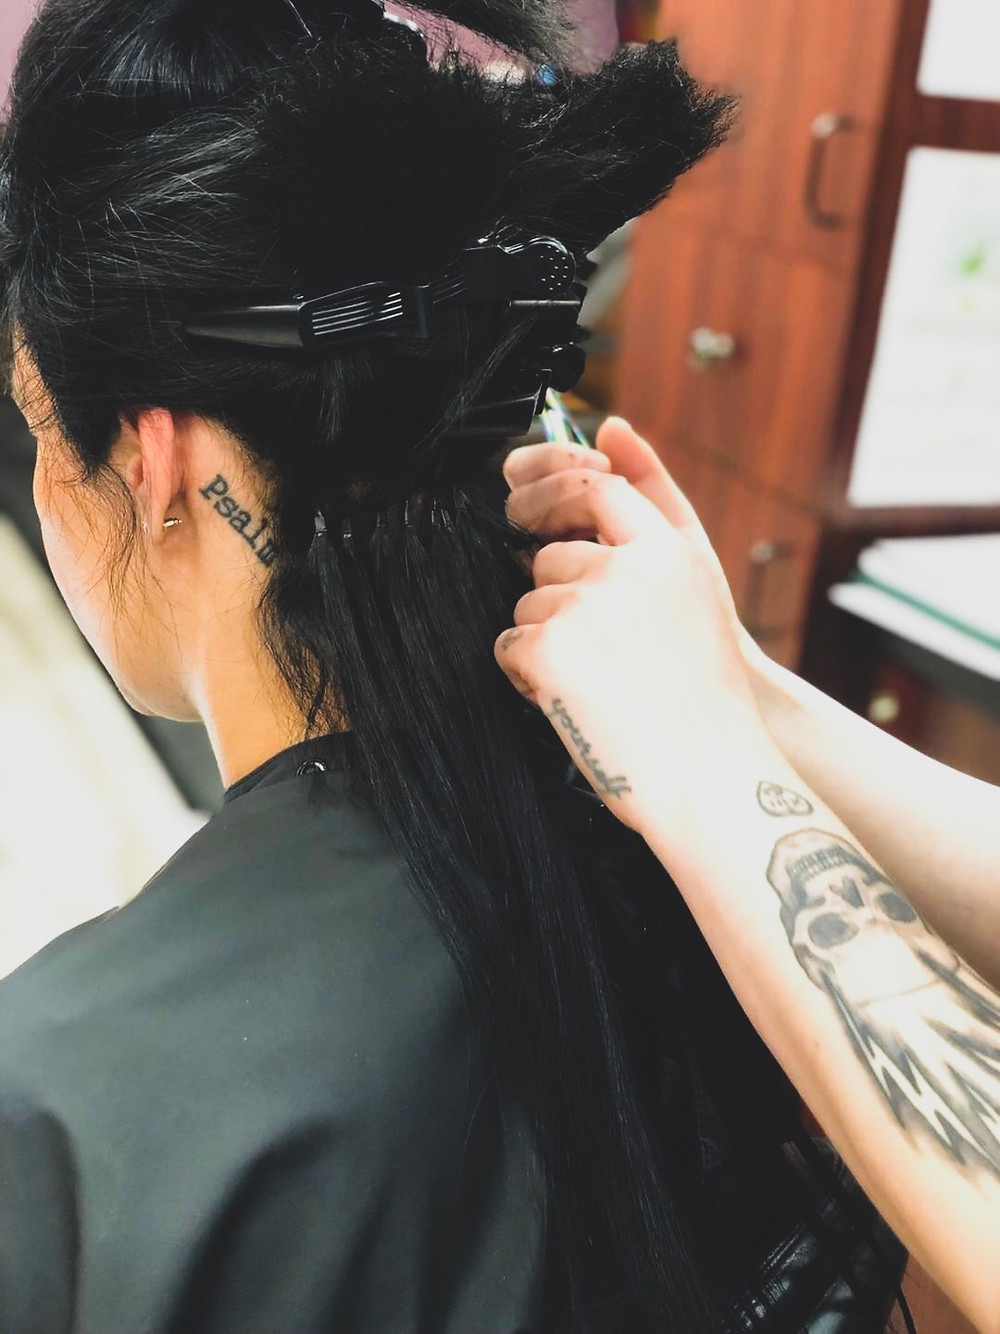 hair extensions, dreamcatchers, bonded hair extensions, Indianapolis hair extensions, Southside salon, Indianapolis salon, Indianapolis spa, indy hair extensions